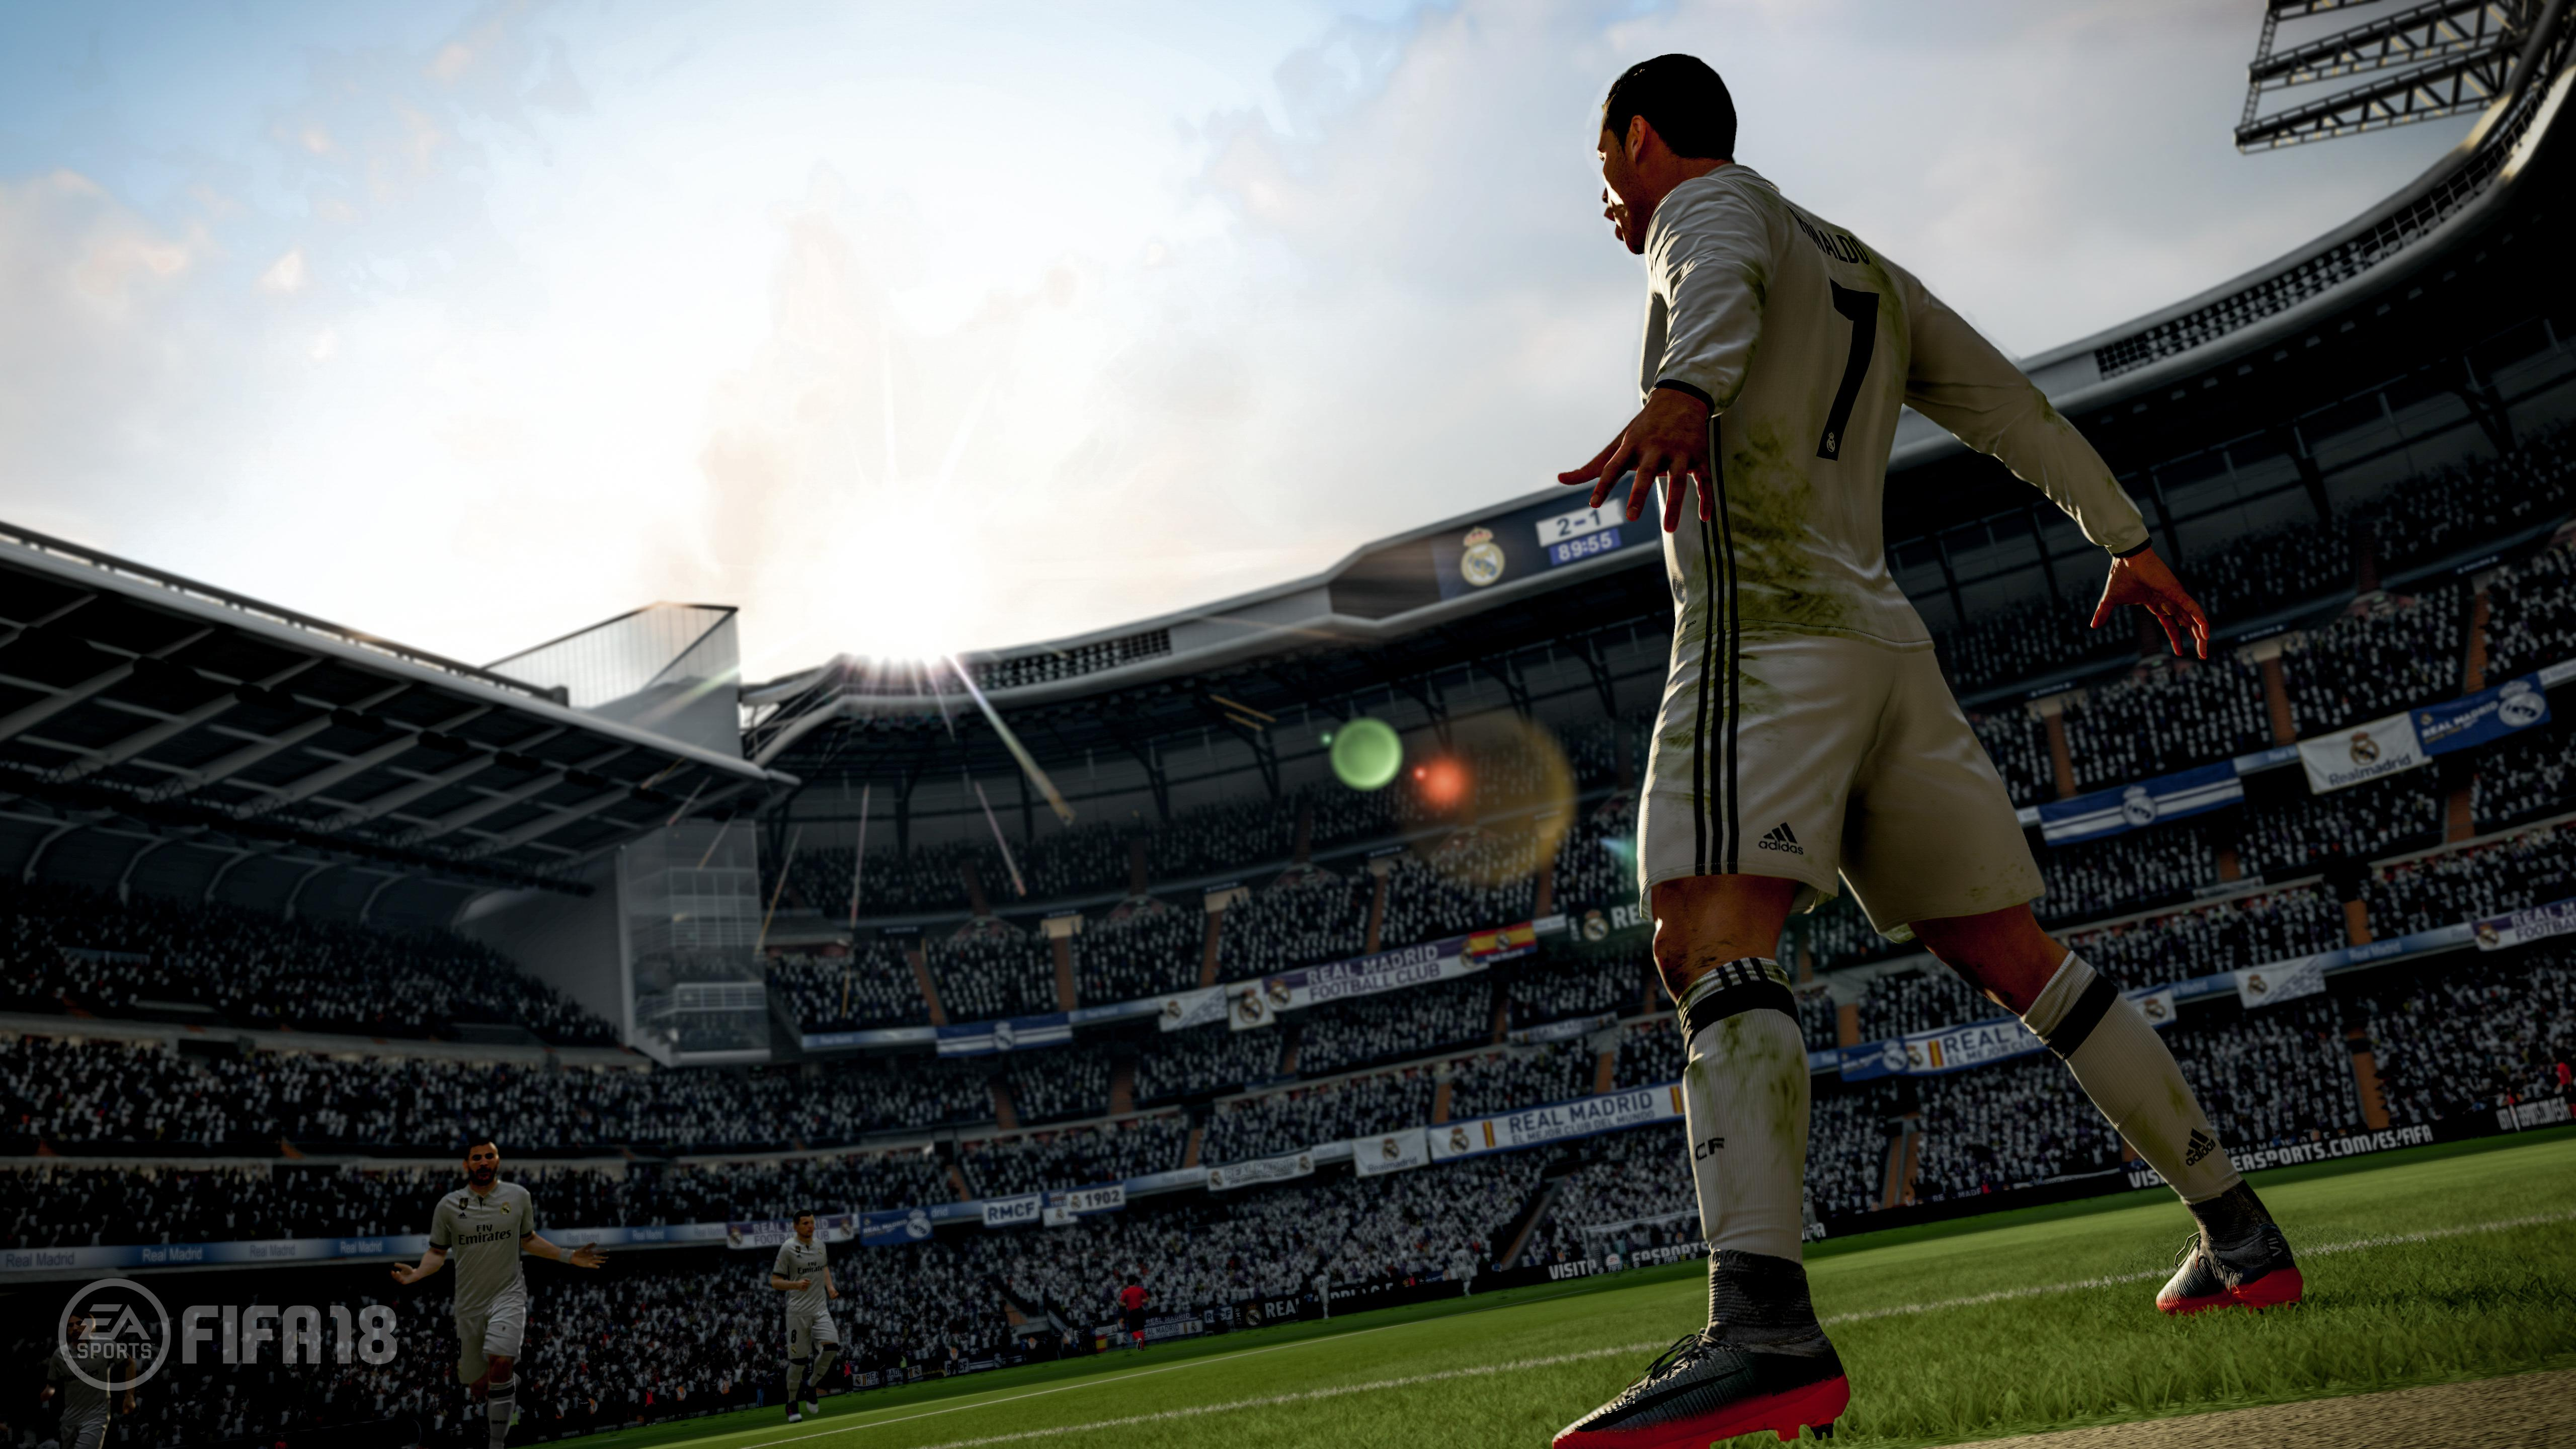 FIFA 18 is powered by the Frostbite engine – which looks to have been put to better use this year